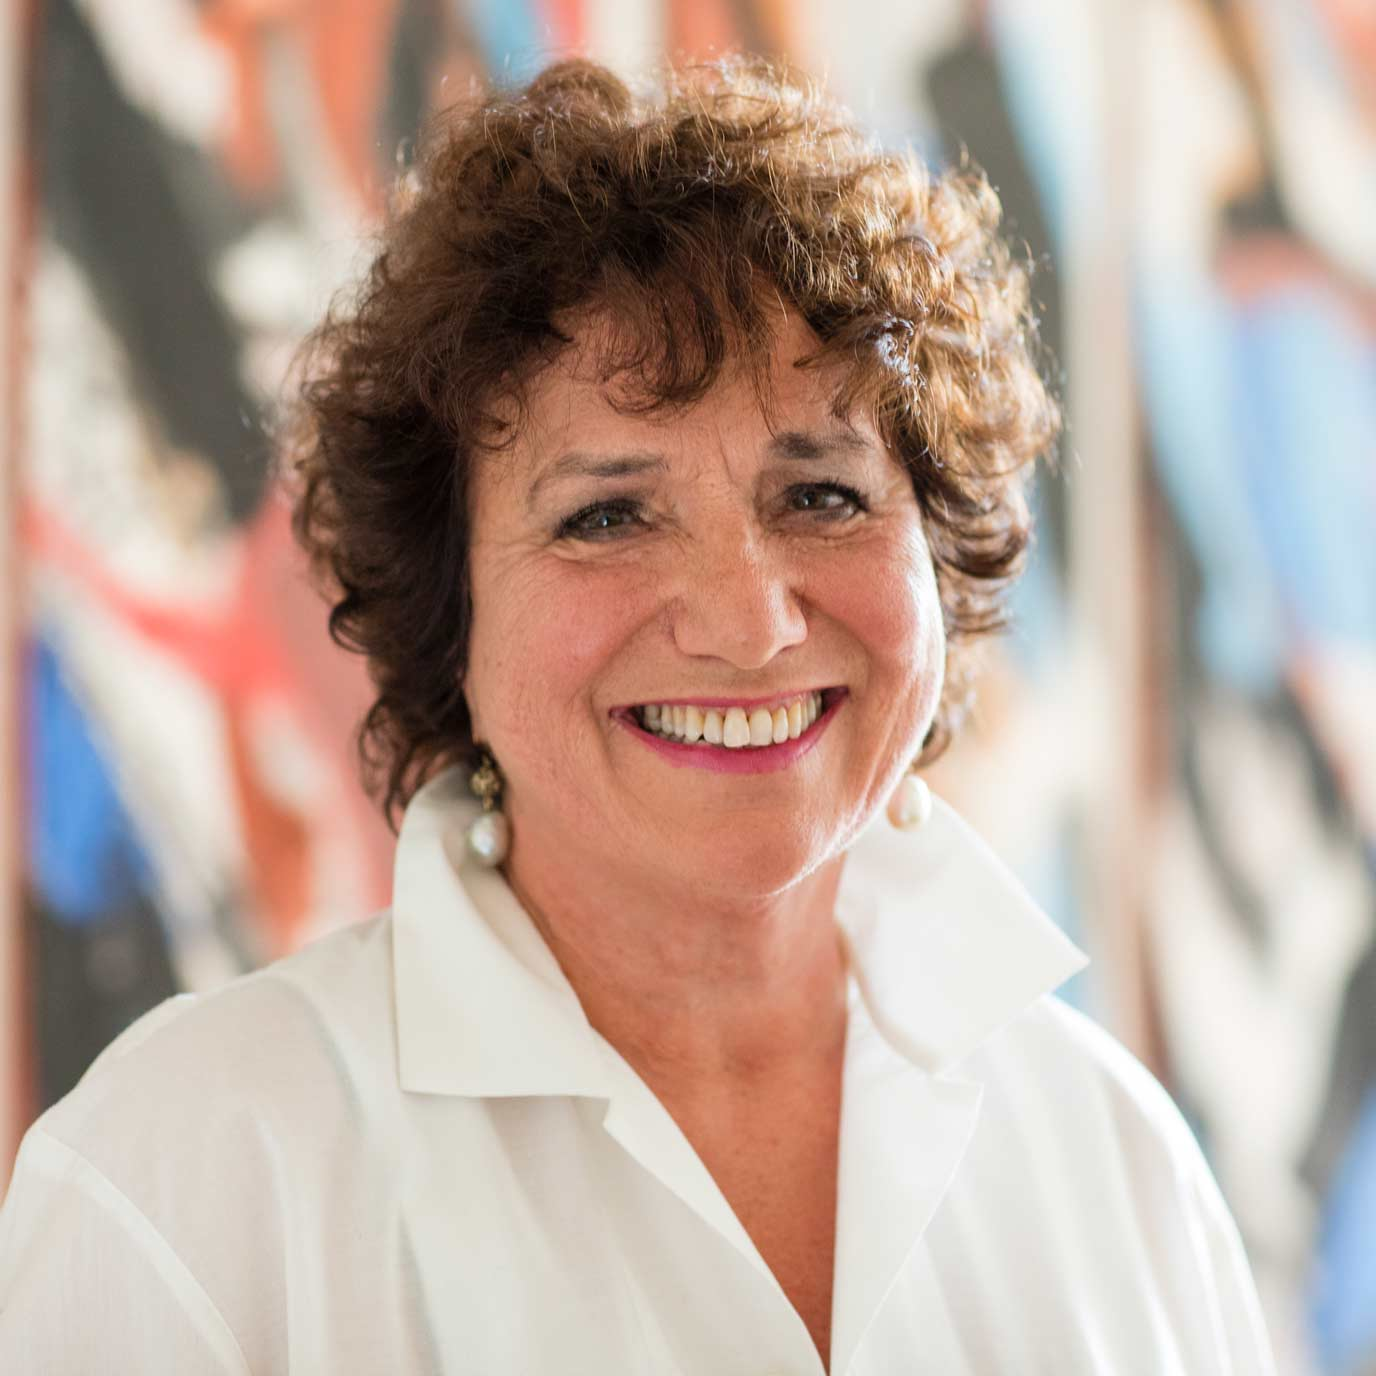 We Are The City – Inspirational Woman: Dr Marion Gluck